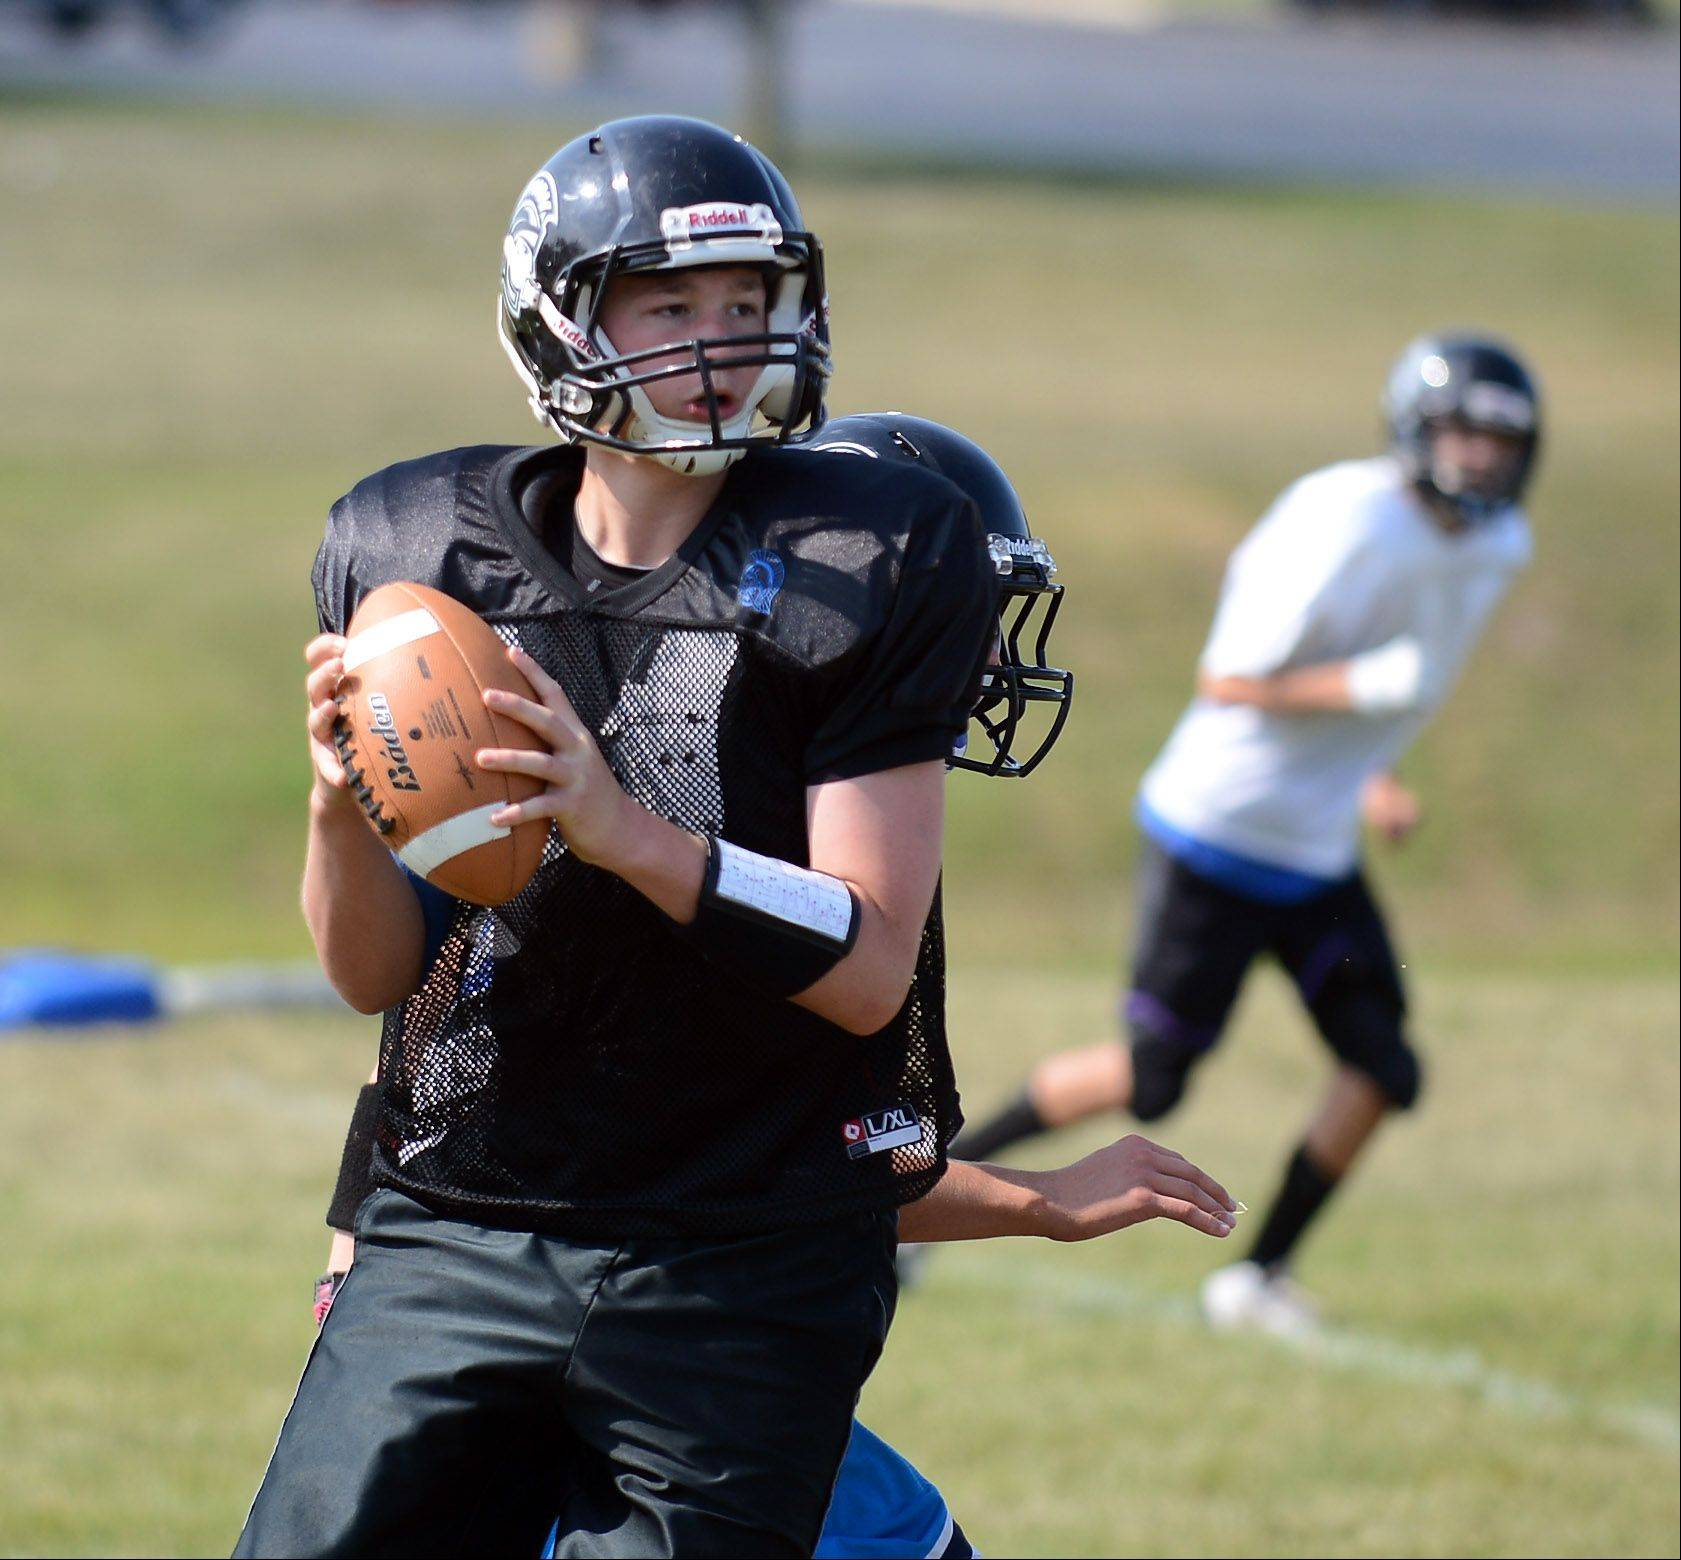 Quarterback Max Tucker looks for a target during Westminster Christian football practice. The Warriors play the first varsity game in school history Saturday in Chicago against Luther North.